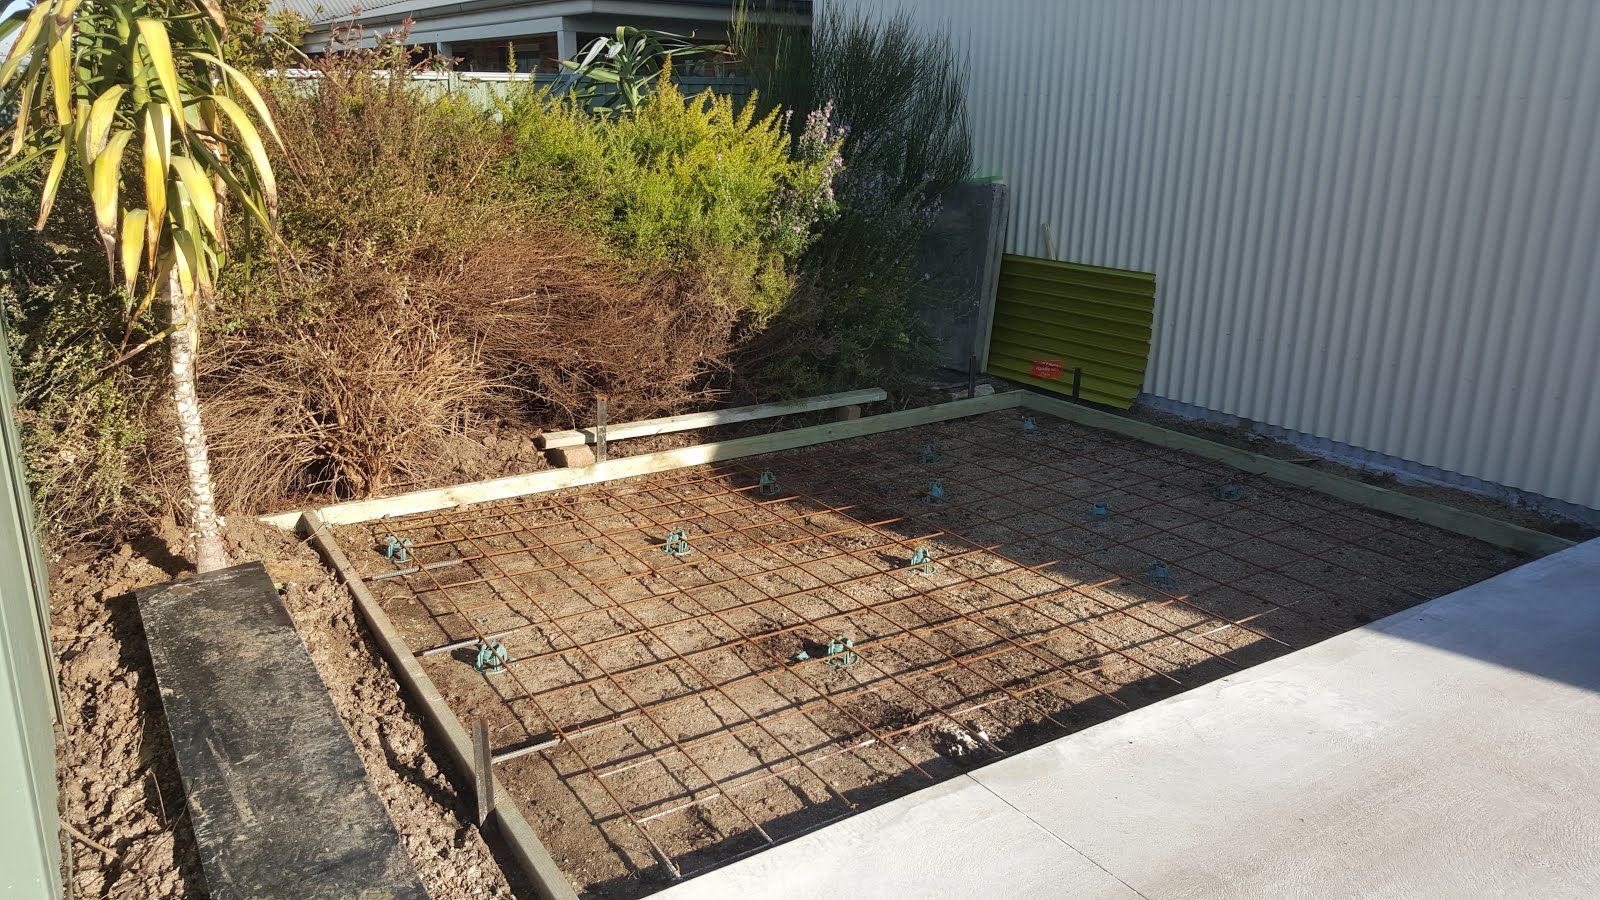 Jannimary in our own back yard part 4 the shed garden for Pouring your own concrete driveway